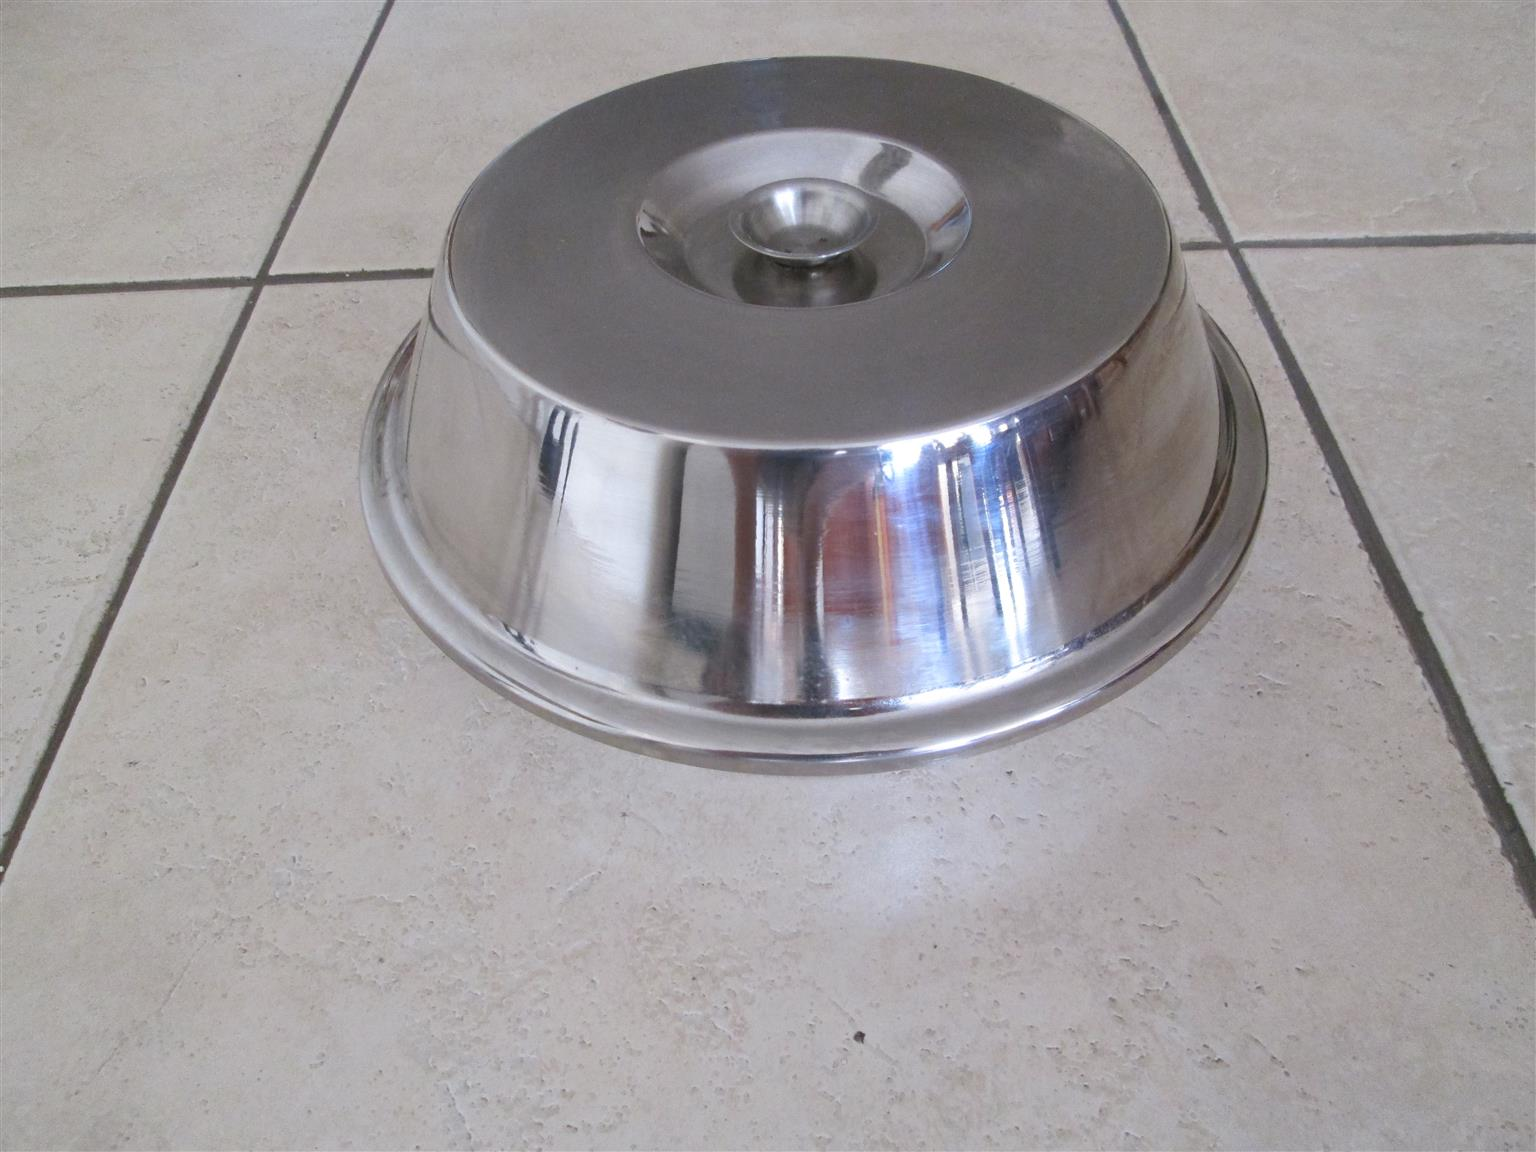 New Stainless Steel 3 Division Vegetable Dish